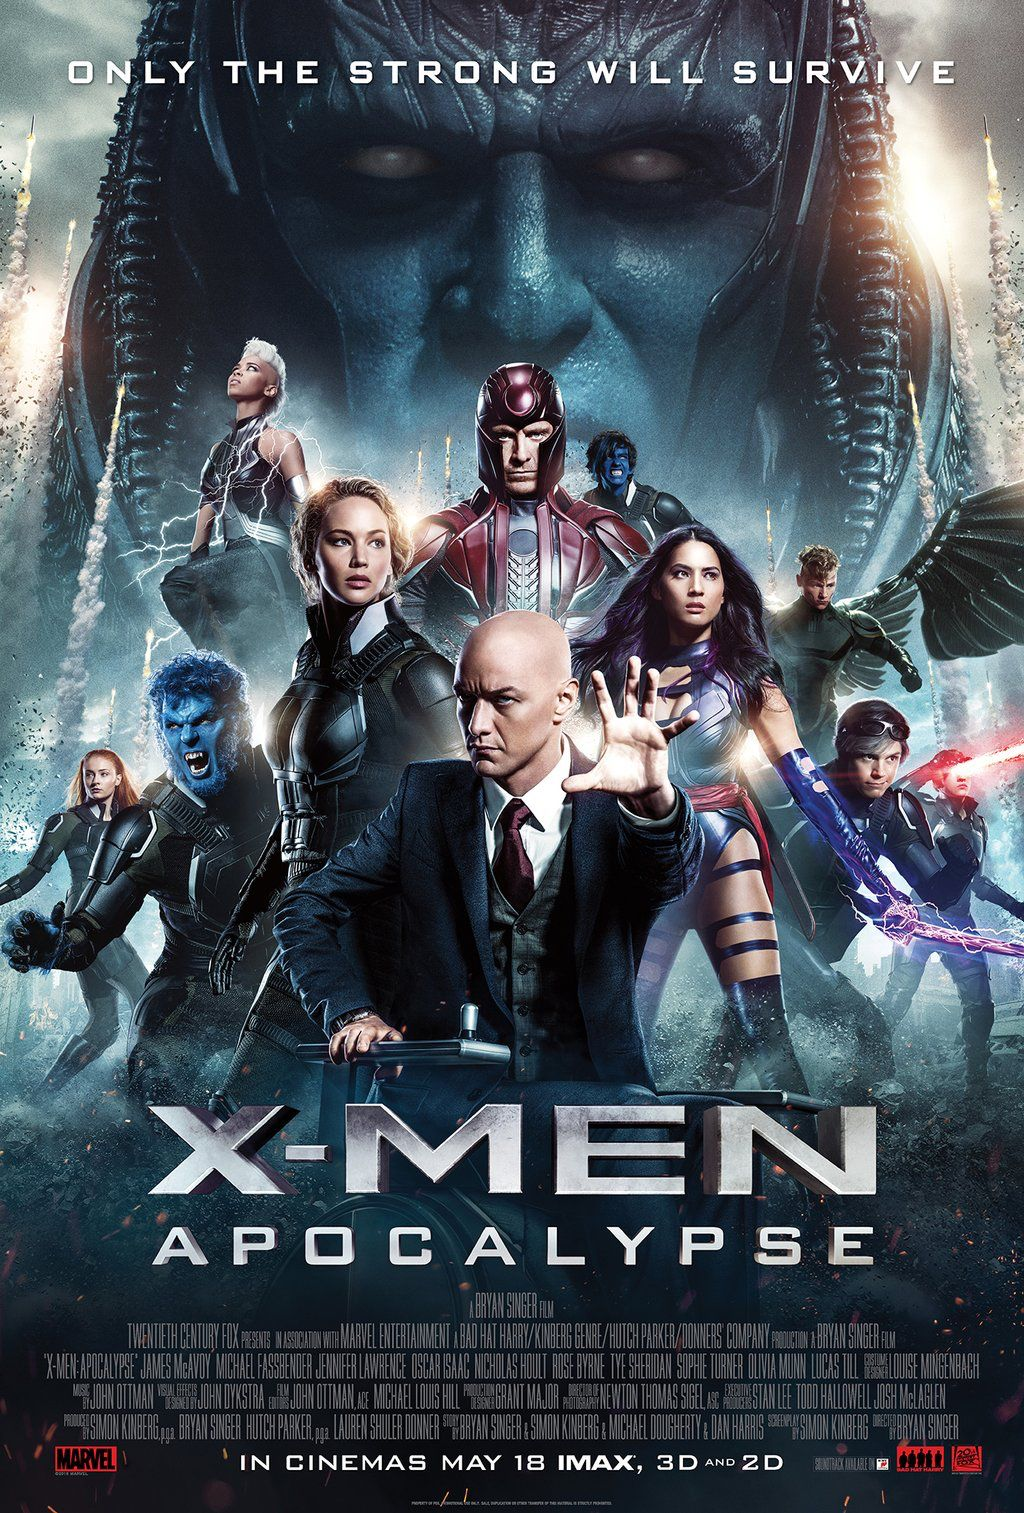 X Men Apocalypse Apocalypse Movies X Men Apocalypse Man Movies